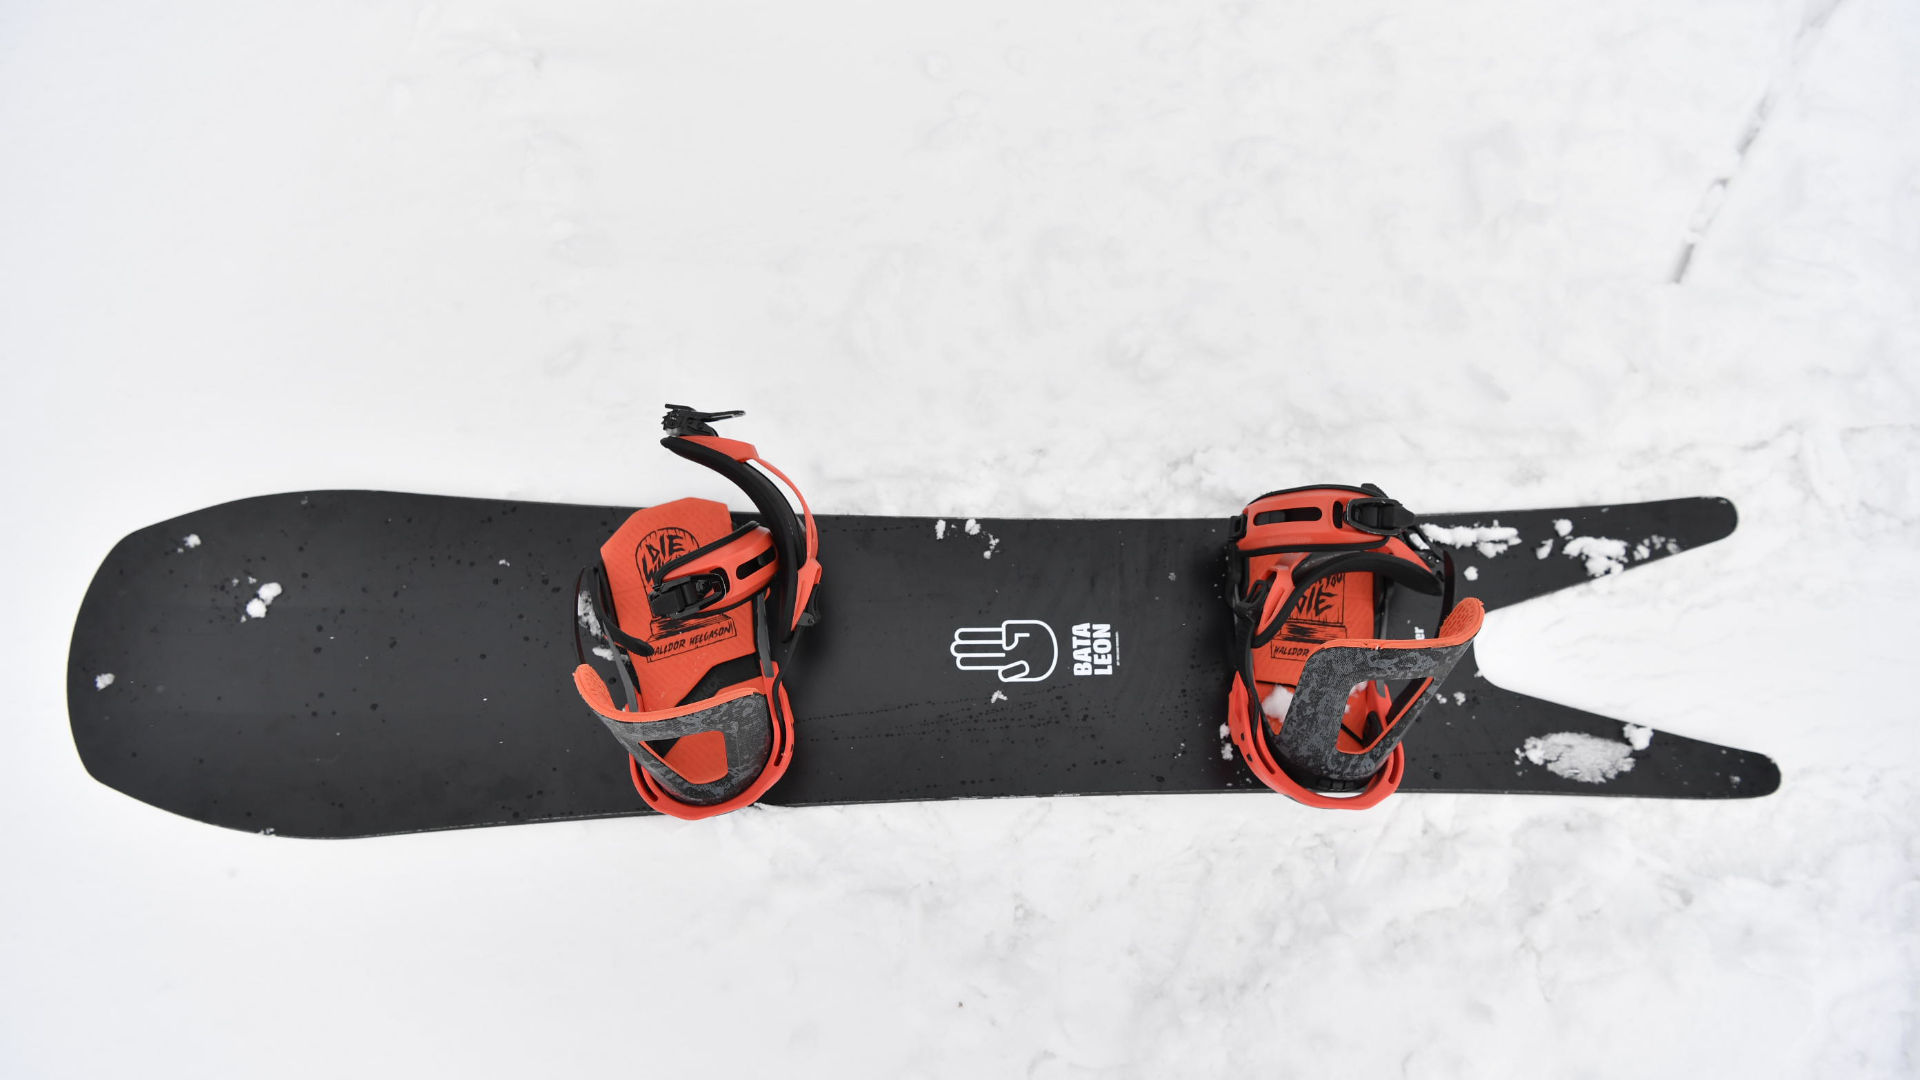 Bataleon Surfer with Switchback Bindings with a big setback